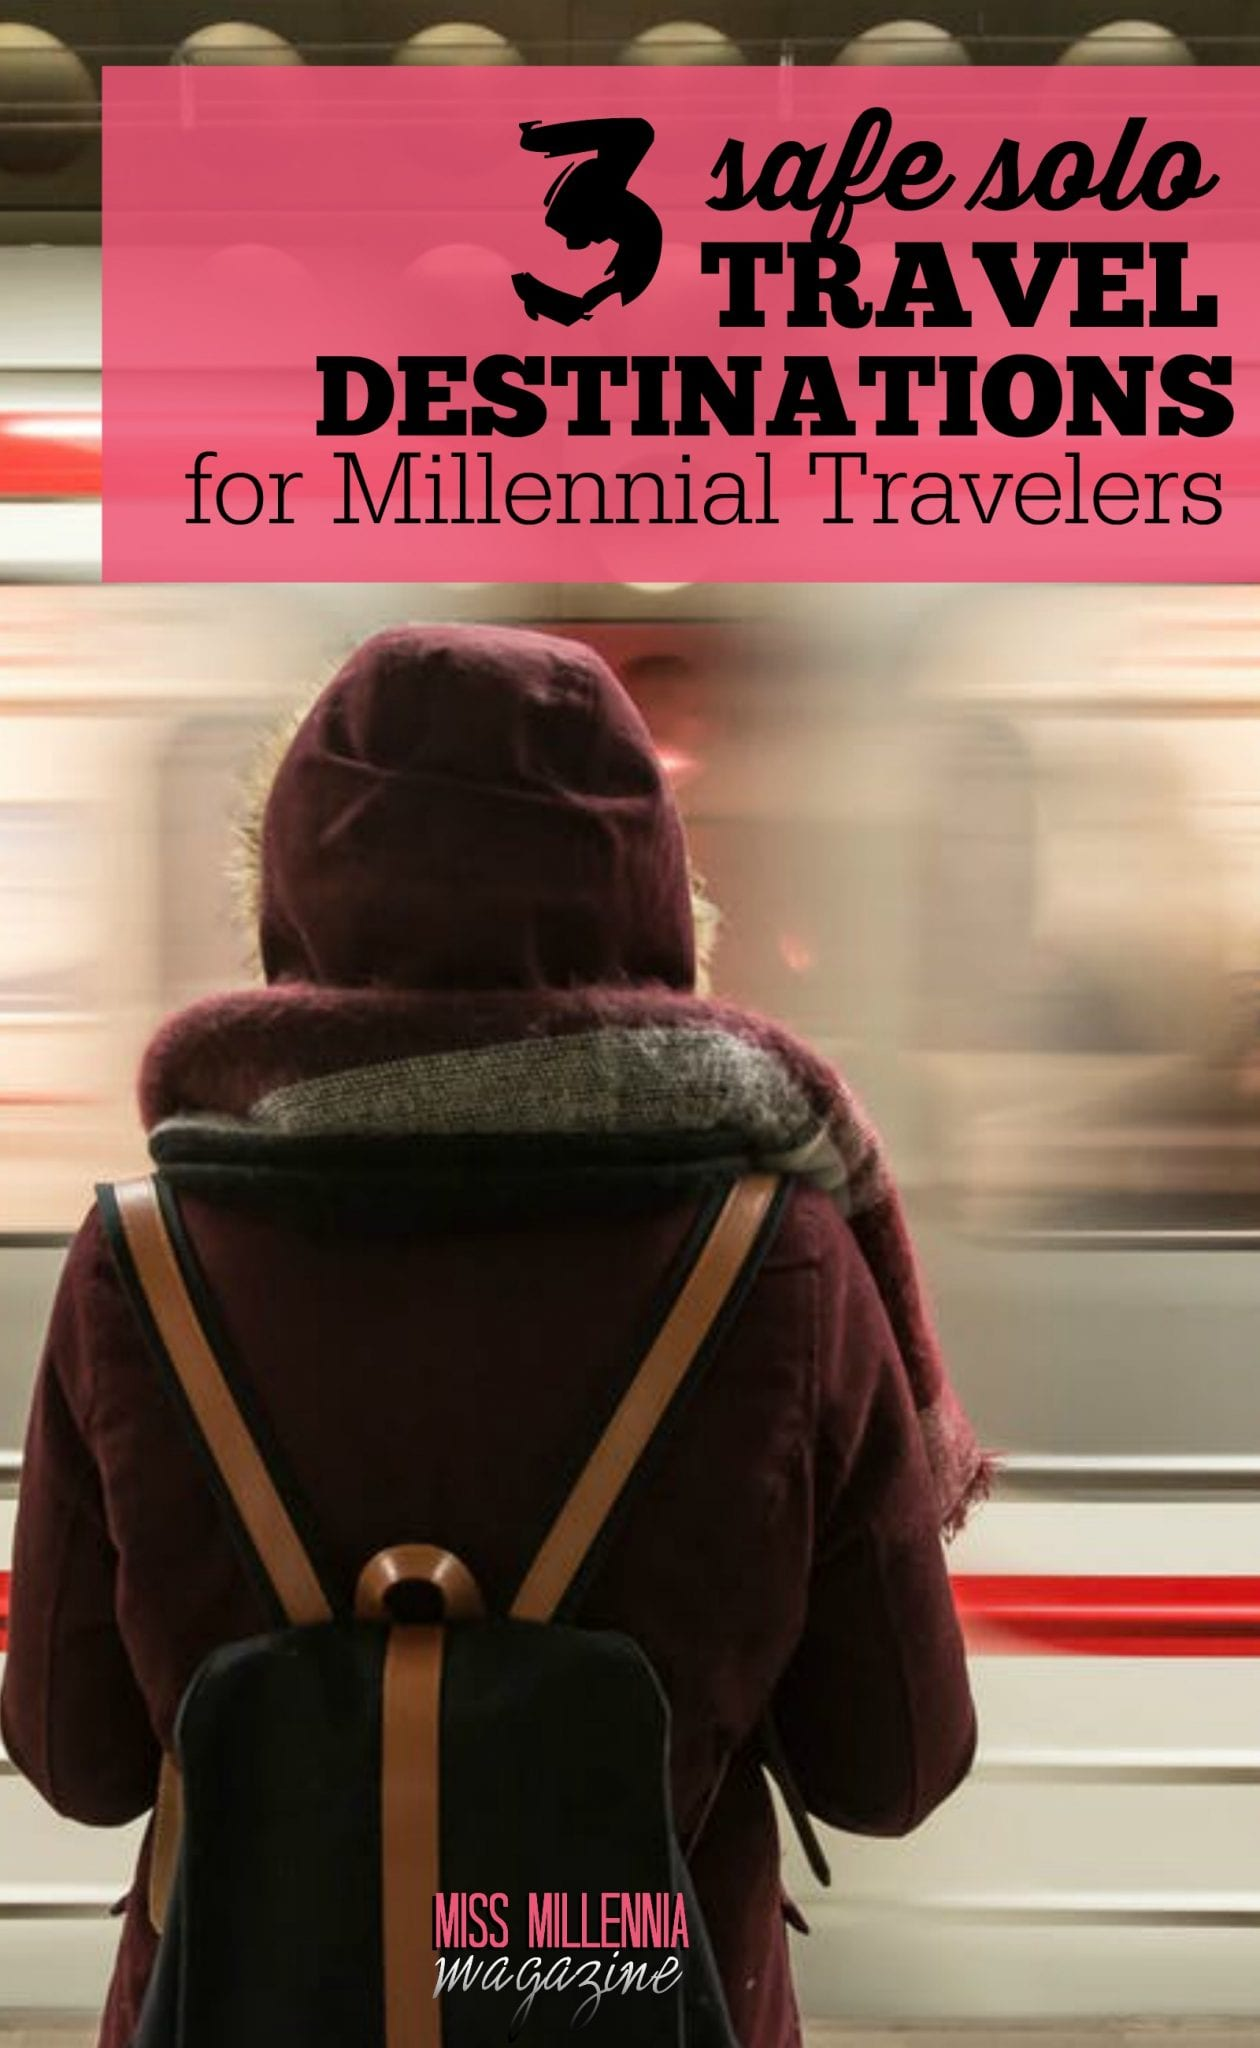 Following are some of the safest solo travel destinations to visit that will provide you with incredible memories and scenery, and fascinating experiences.